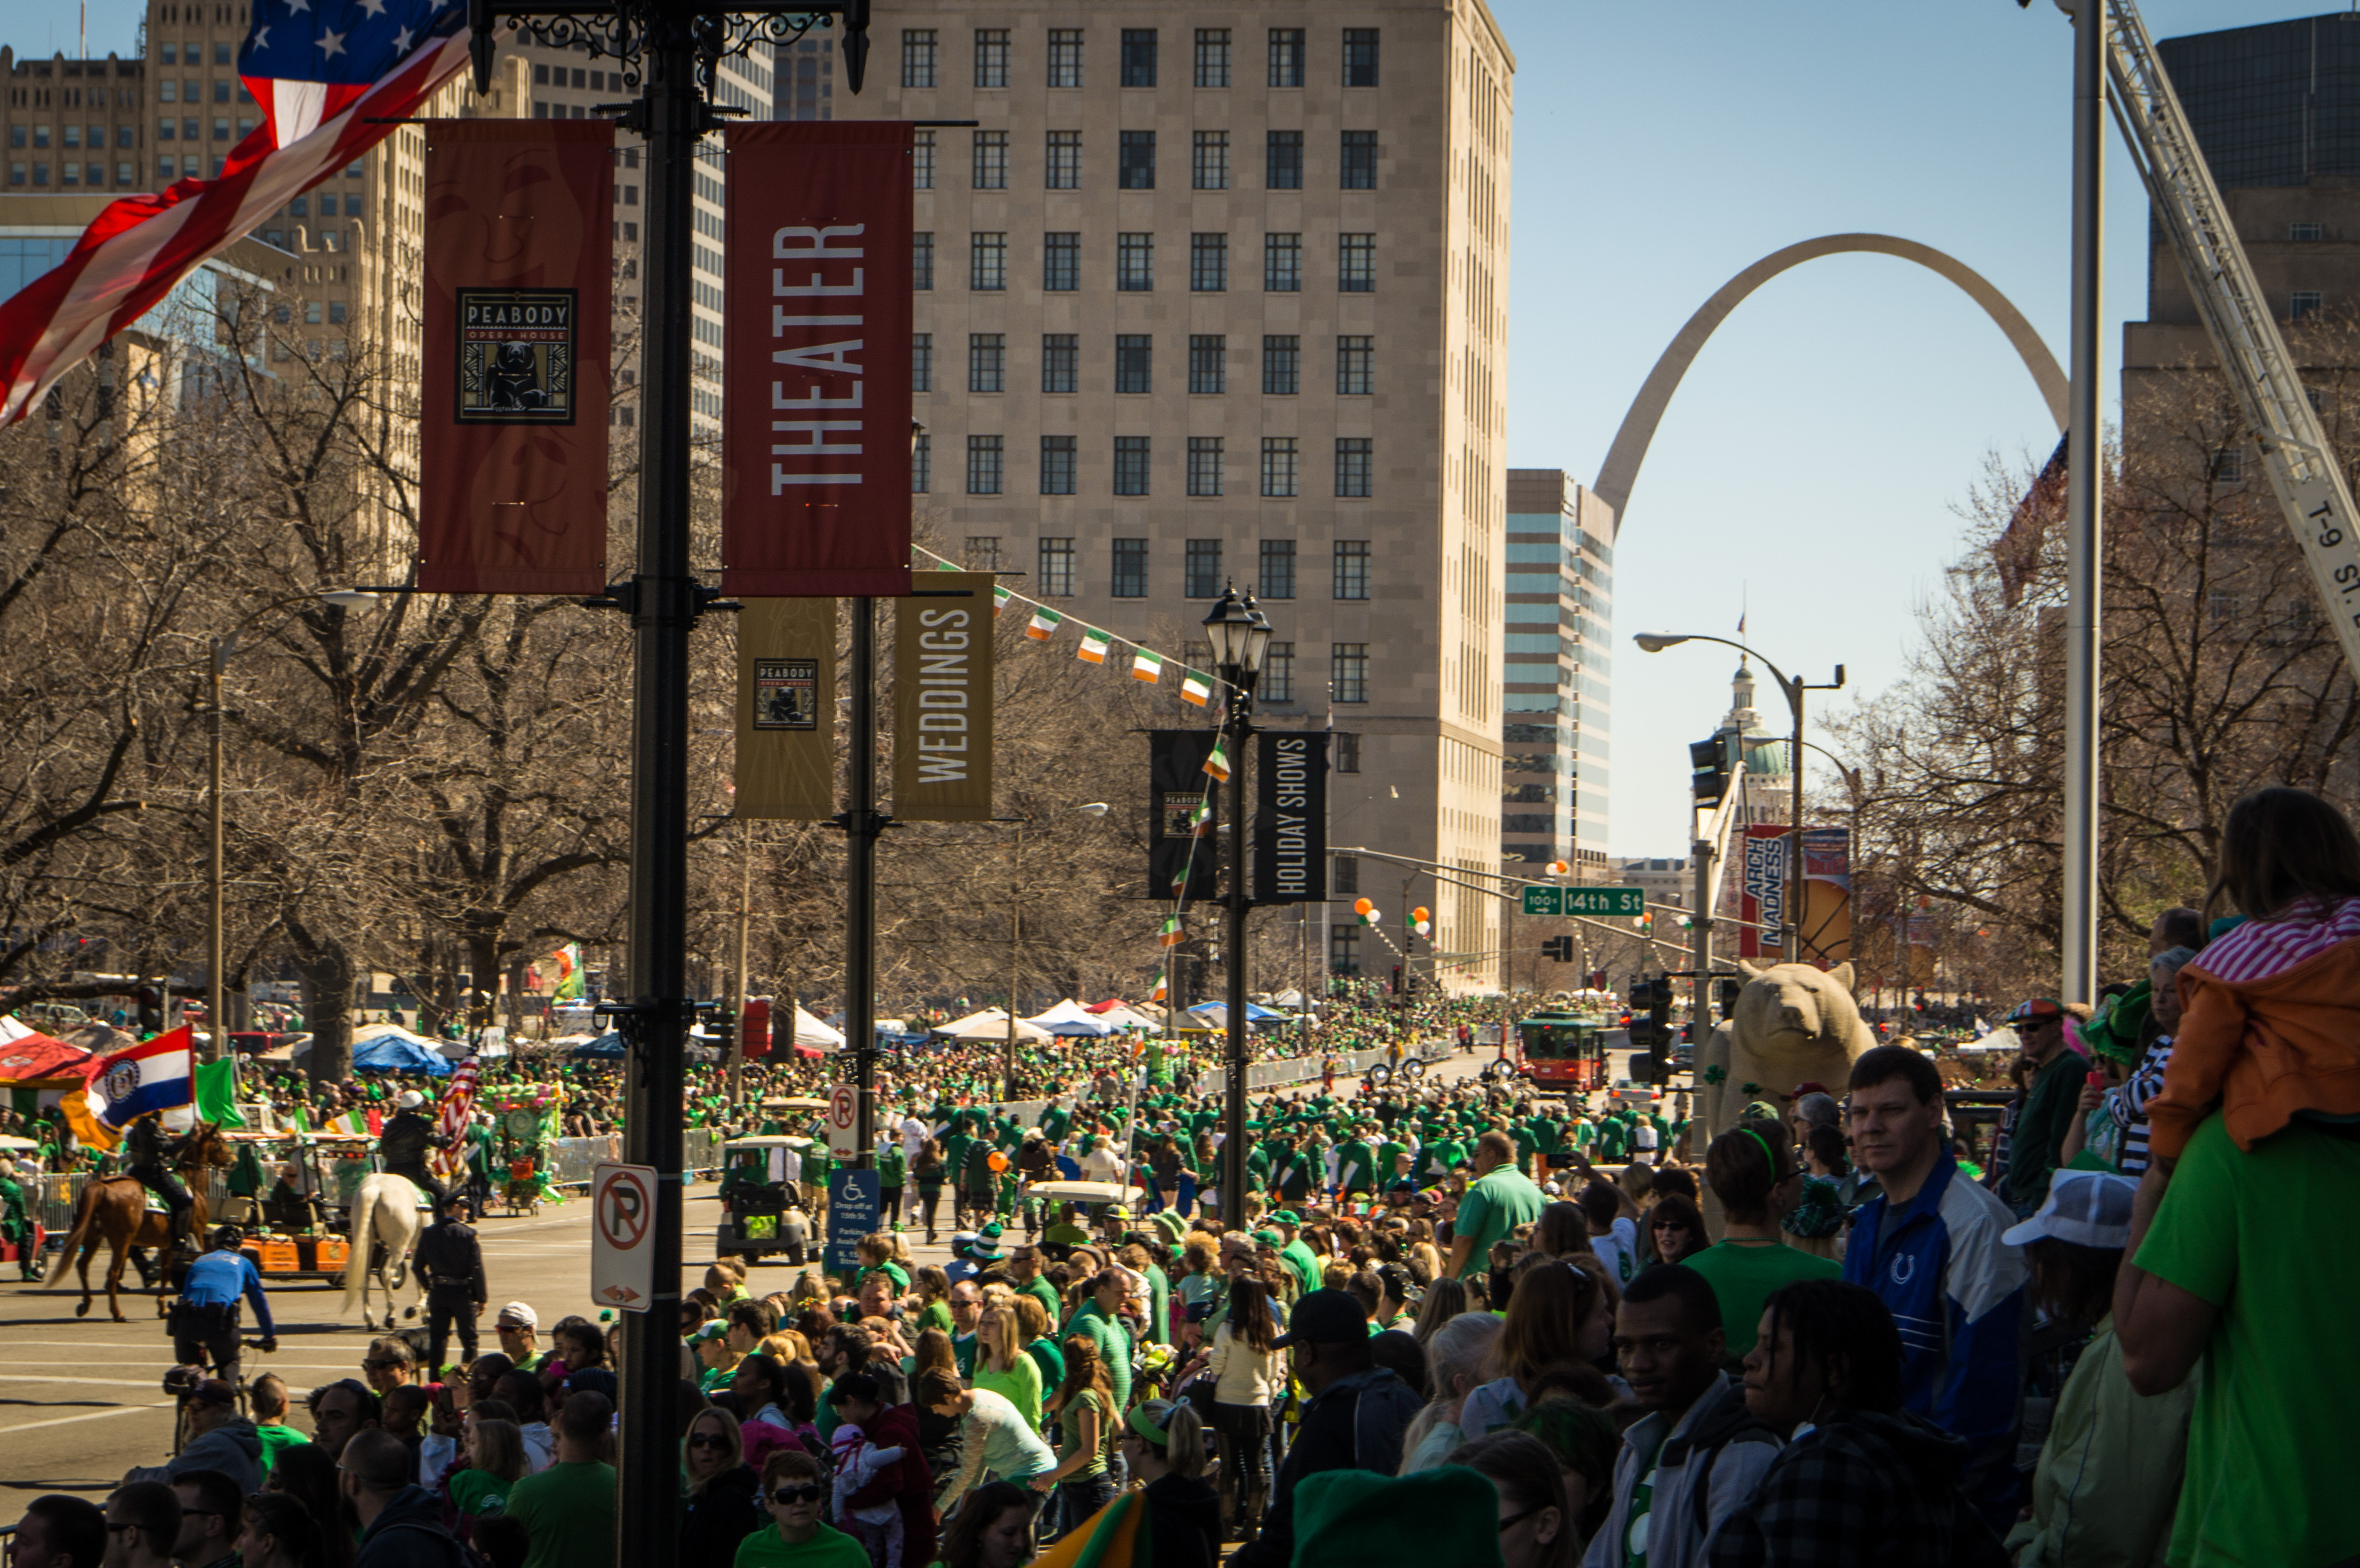 St. Patrick's Day parade marked the first use of a statewide radio